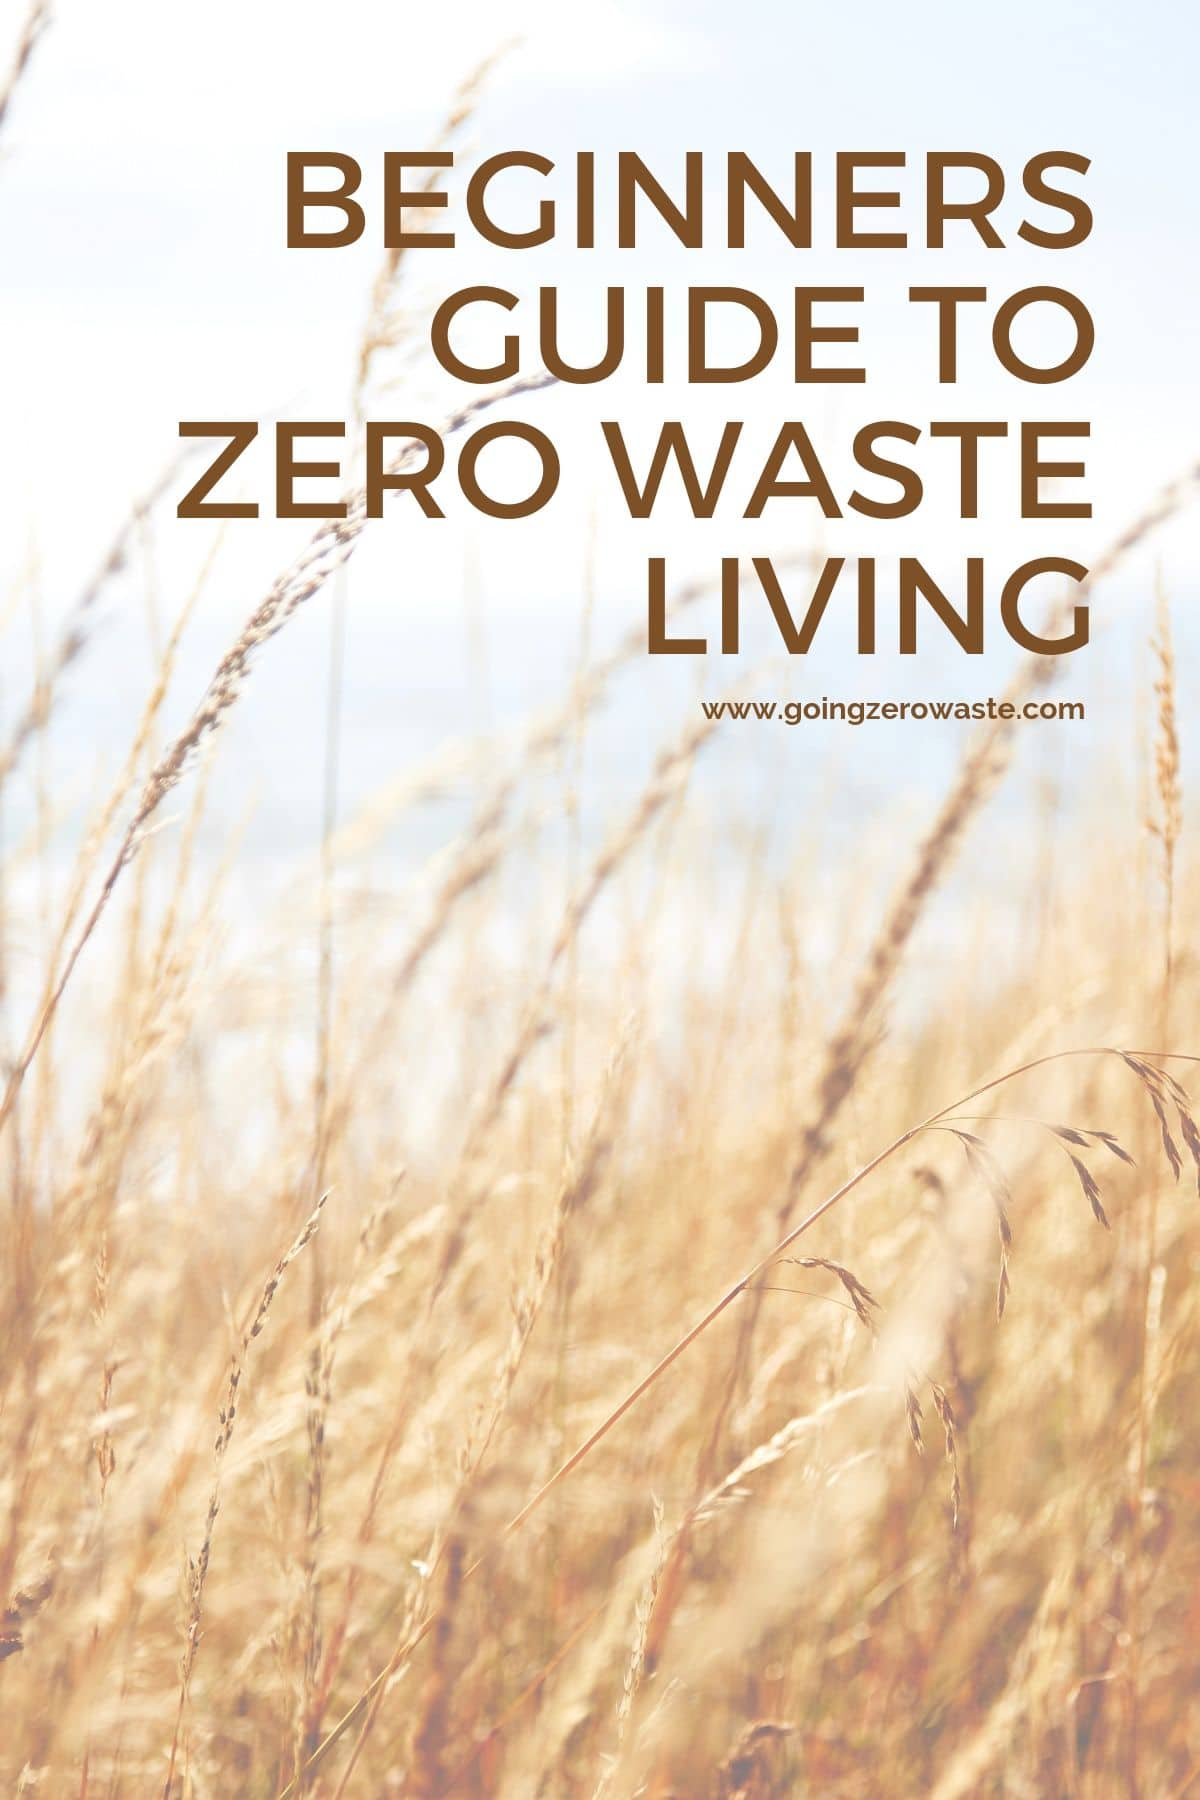 Four Tips for Starting a Zero Waste Lifestyle